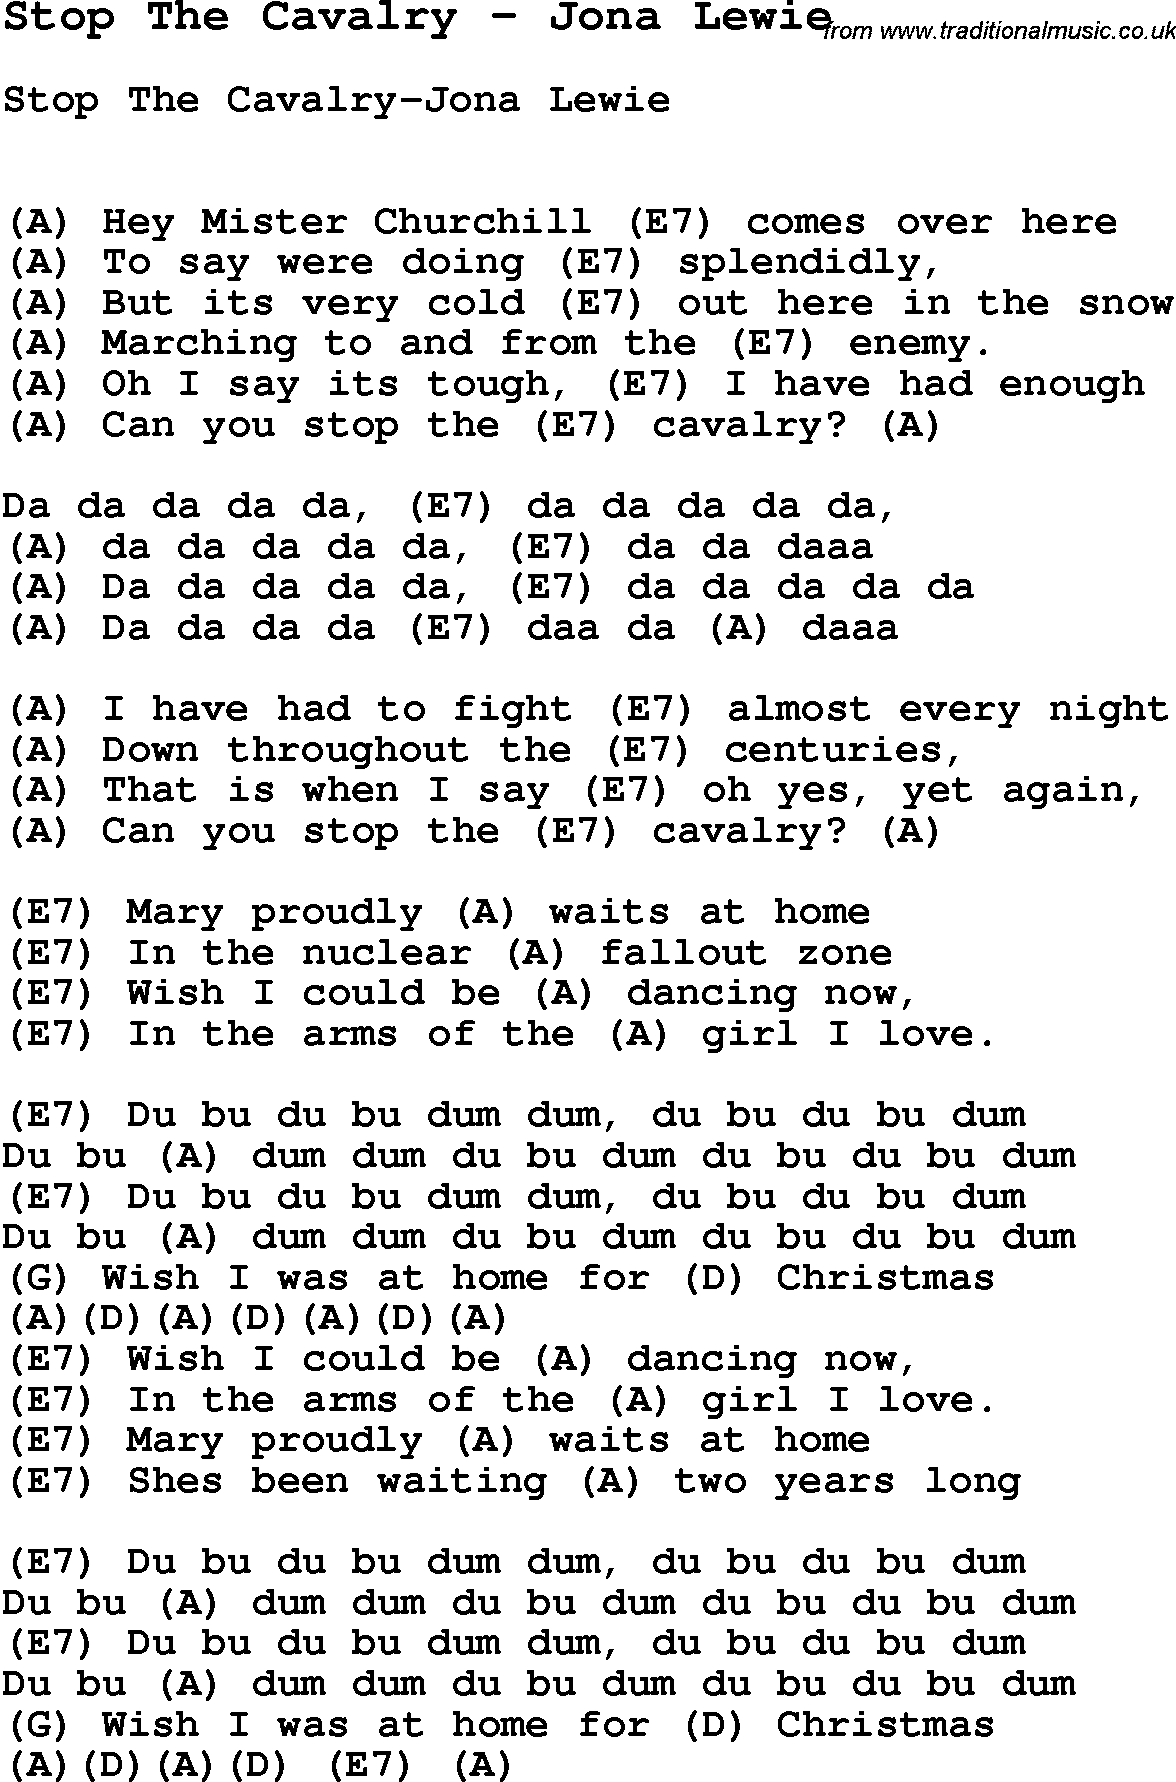 Song Stop The Cavalry by Jona Lewie, song lyric for vocal performance plus accompaniment chords ...